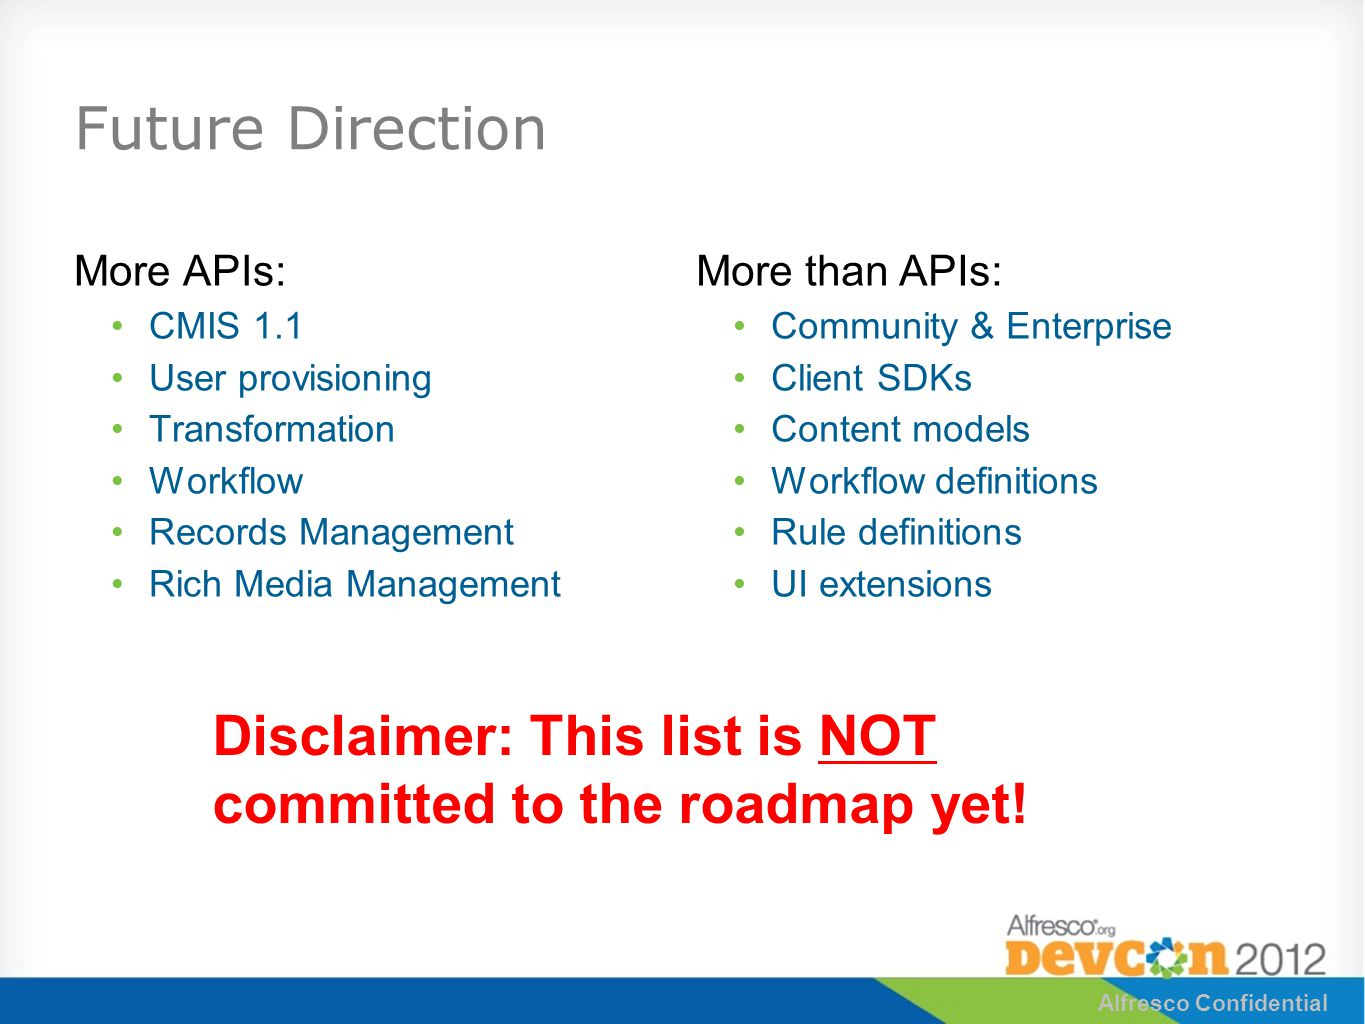 Future Direction More APIs: CMIS 1.1 User provisioning Transformation Workflow Records Management Rich Media Management More than APIs: Community & Enterprise Client SDKs Content models Workflow definitions Rule definitions UI extensions Alfresco Confidential Disclaimer: This list is NOT committed to the roadmap yet!